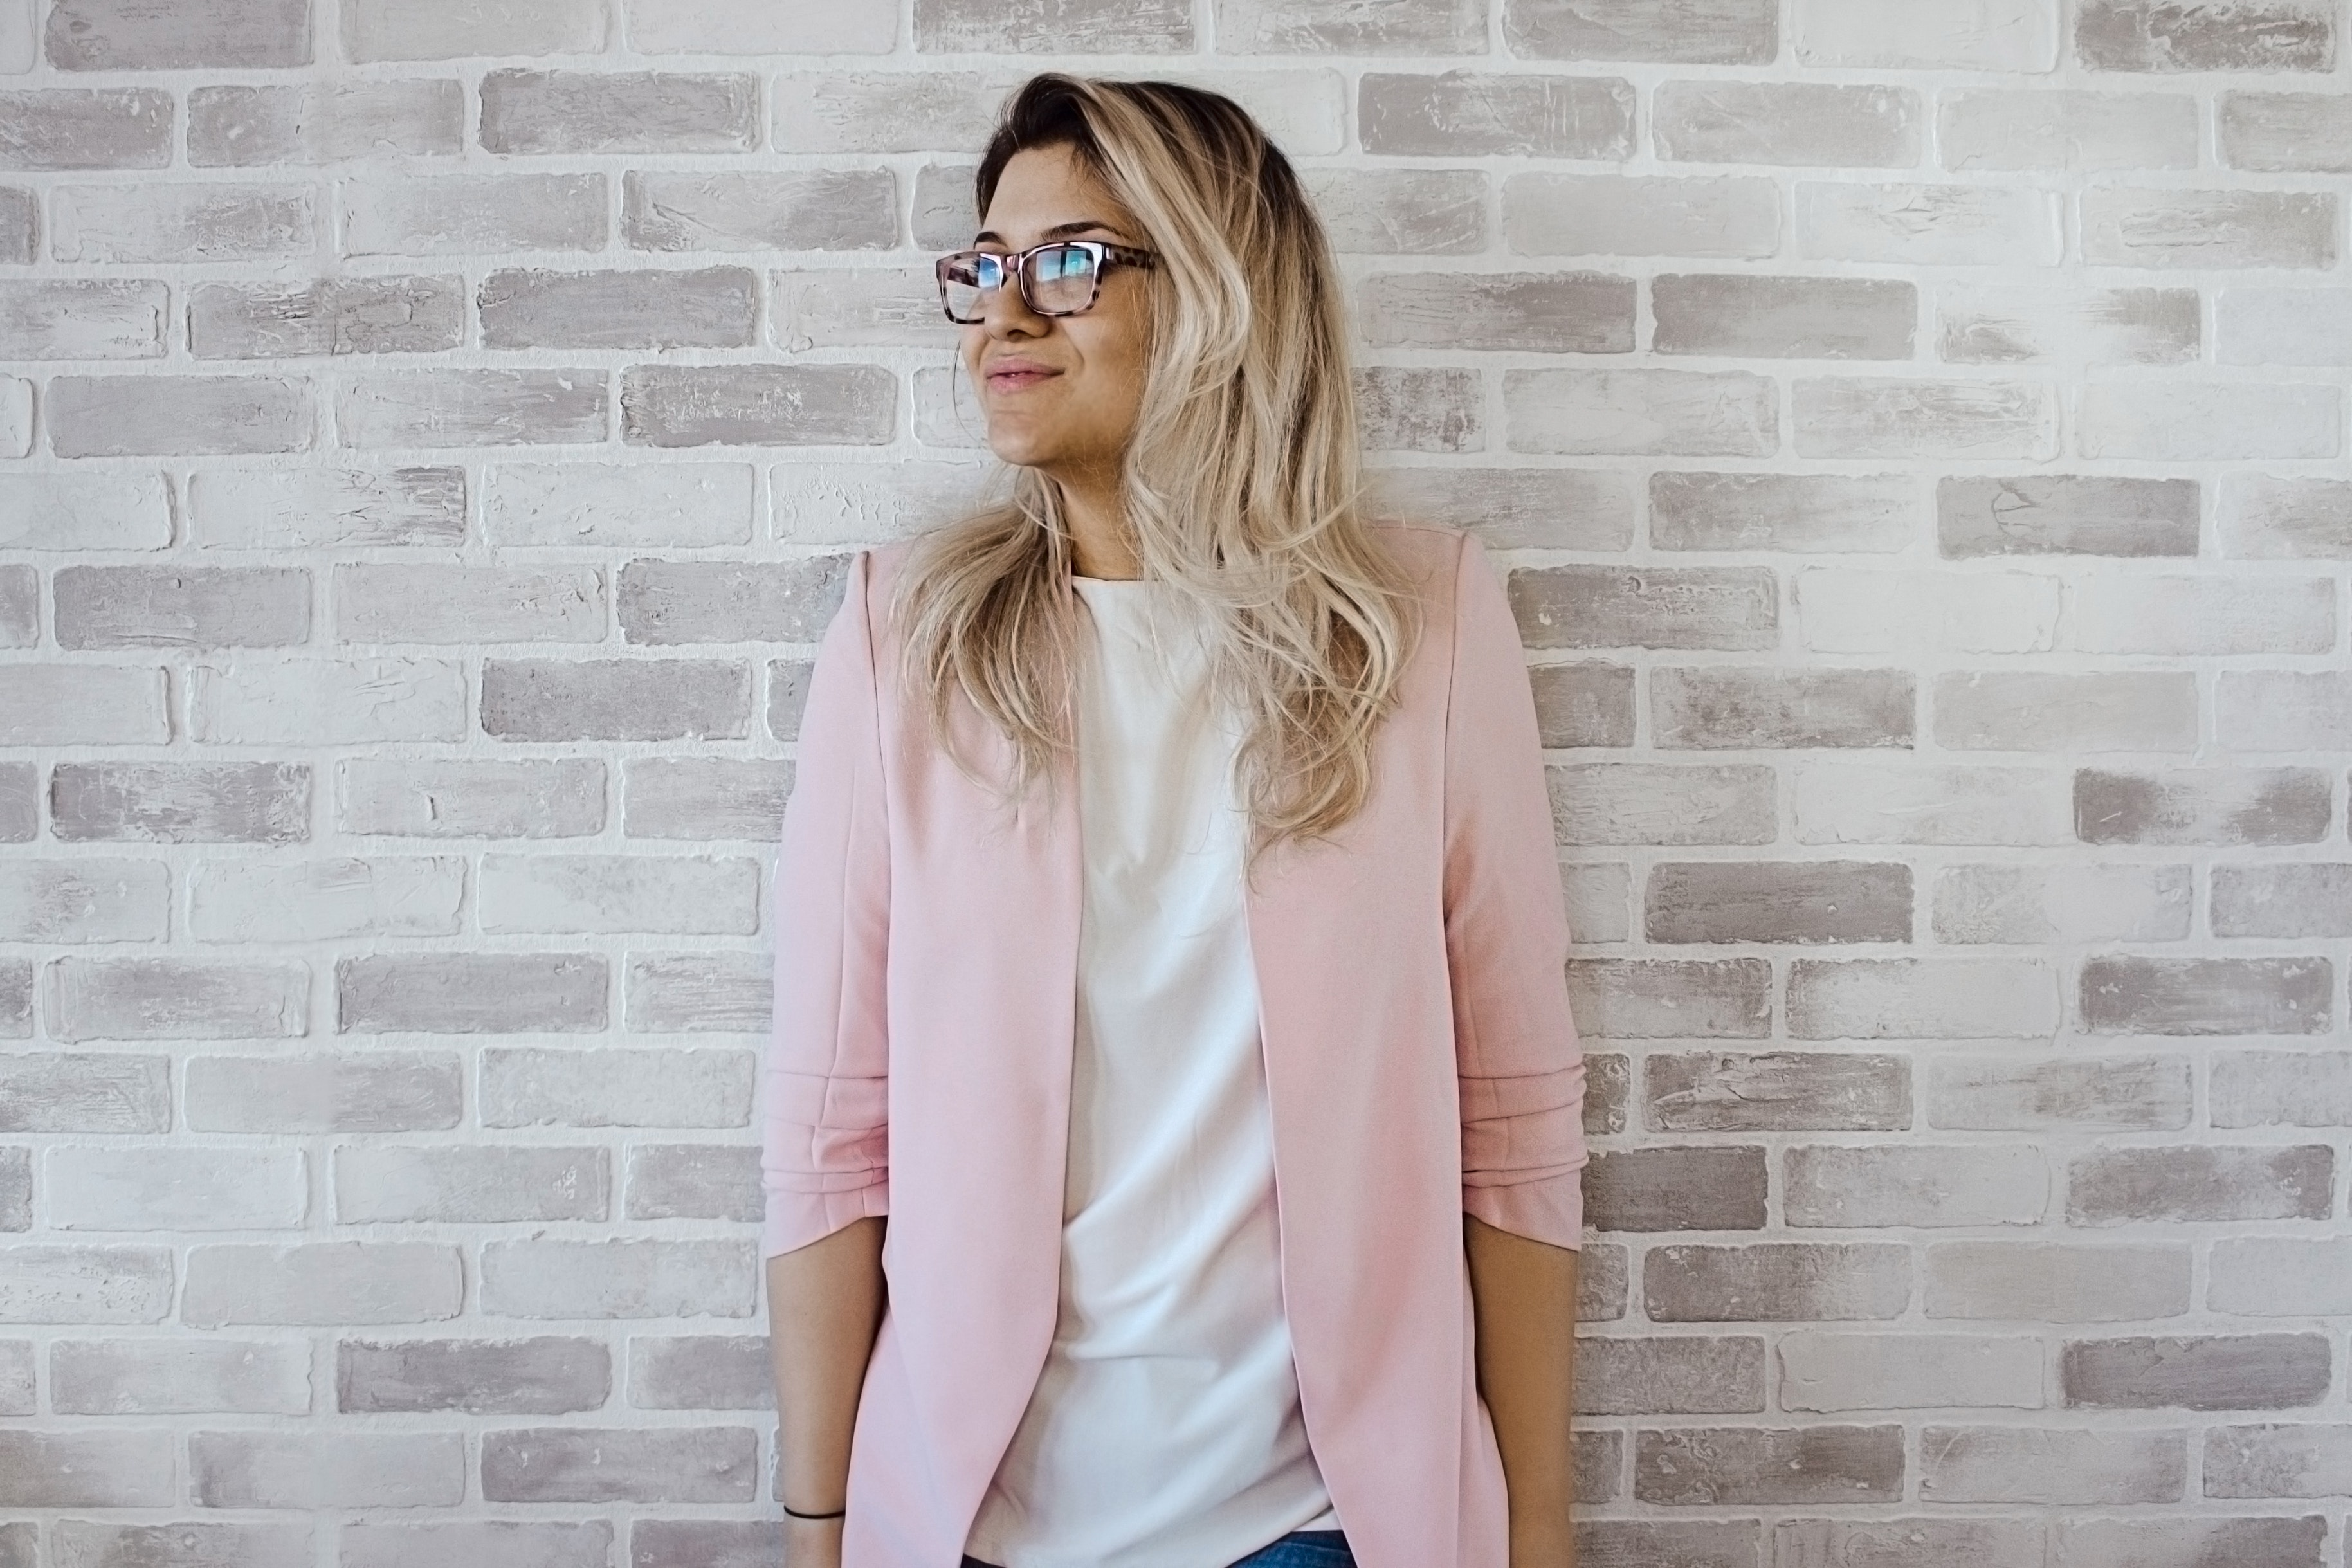 Woman in Pink Cardigan and White Shirt Leaning on the Wall, Beautiful, Girl, Wear, Wall, HQ Photo